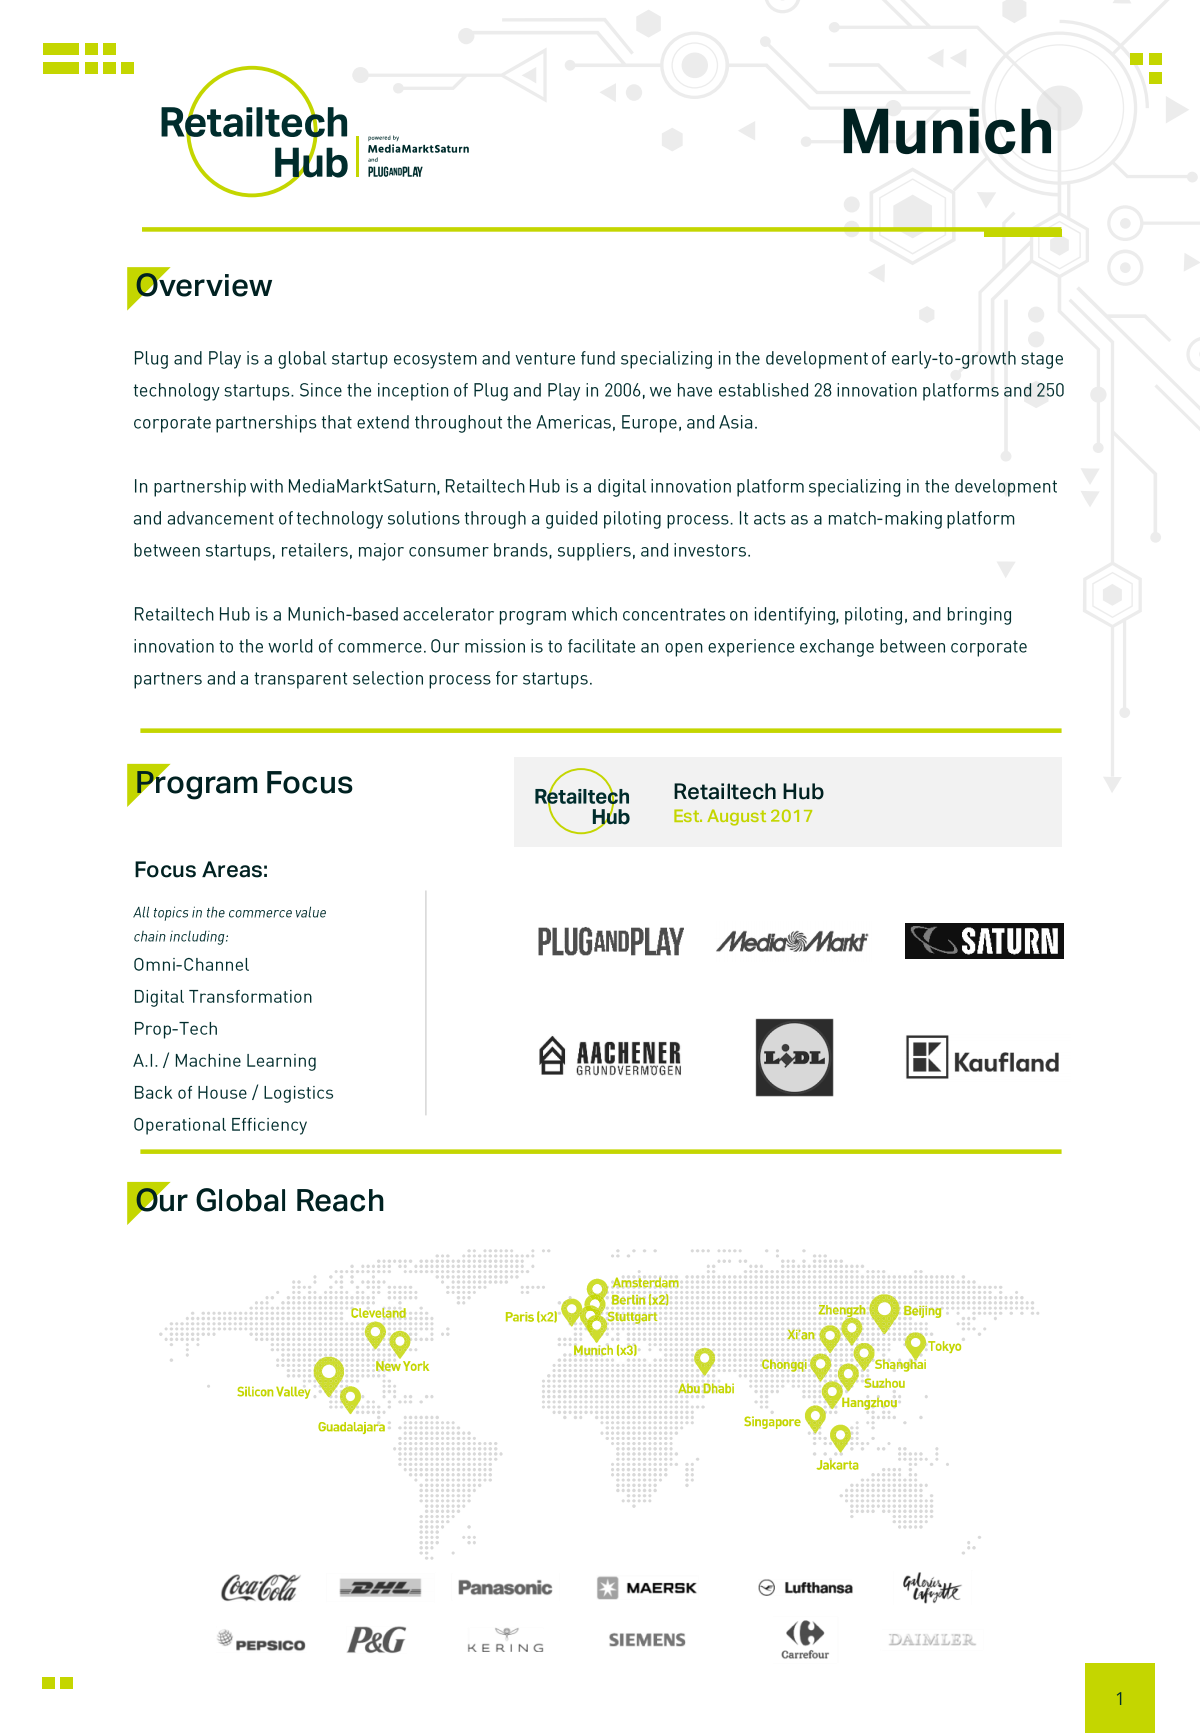 2 Pager Design for Retailtech